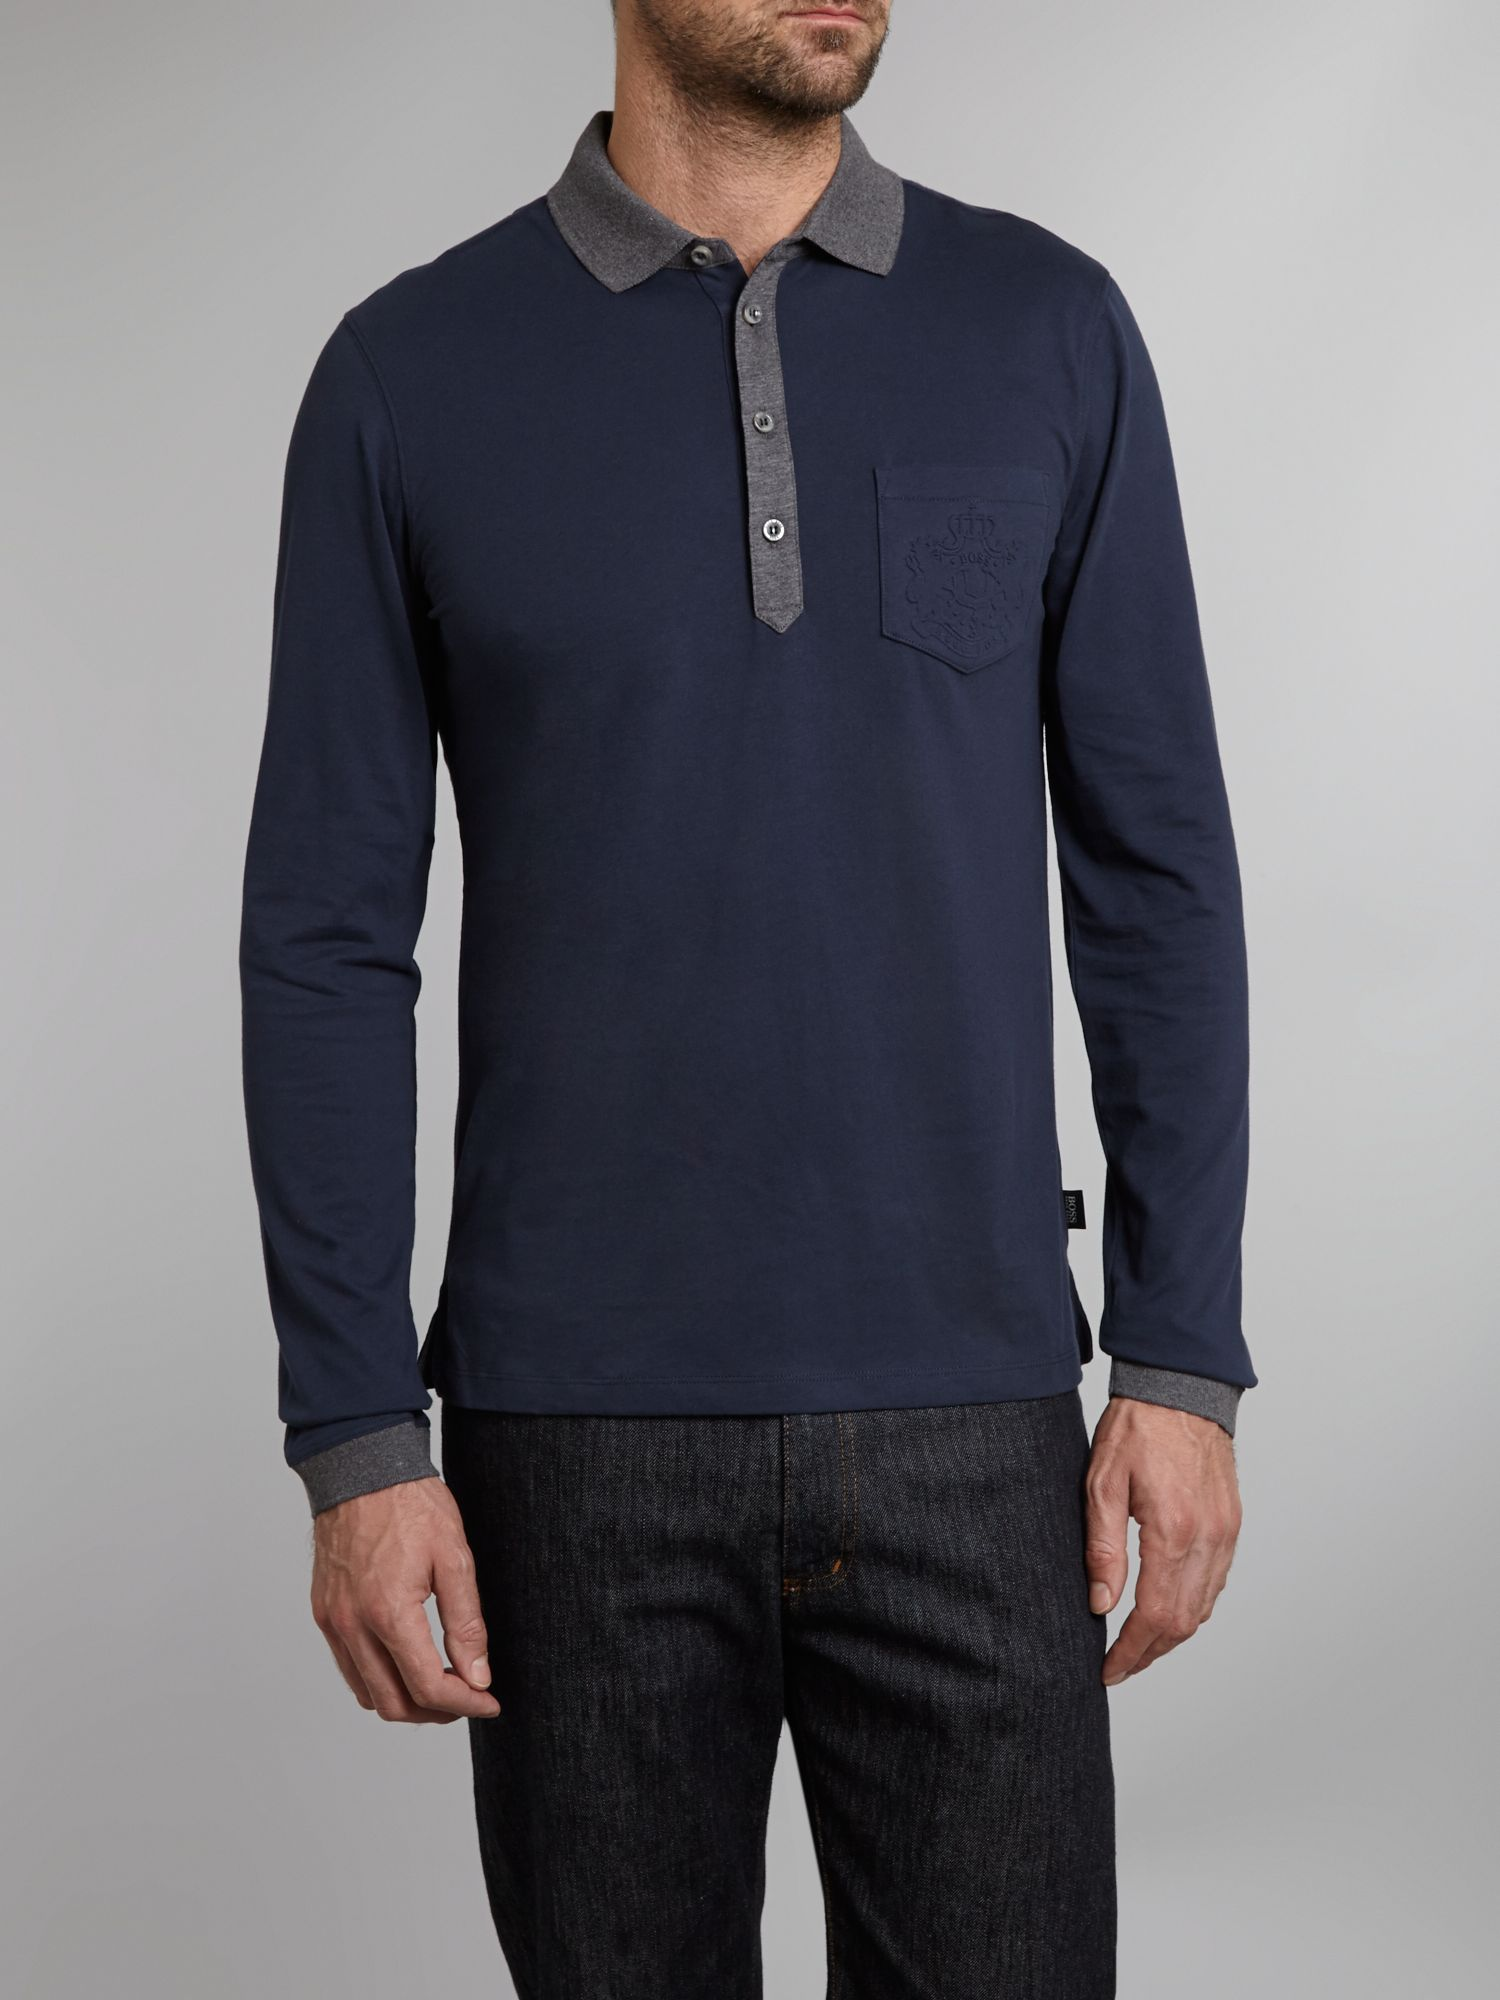 Long sleeve embossed pocket polo